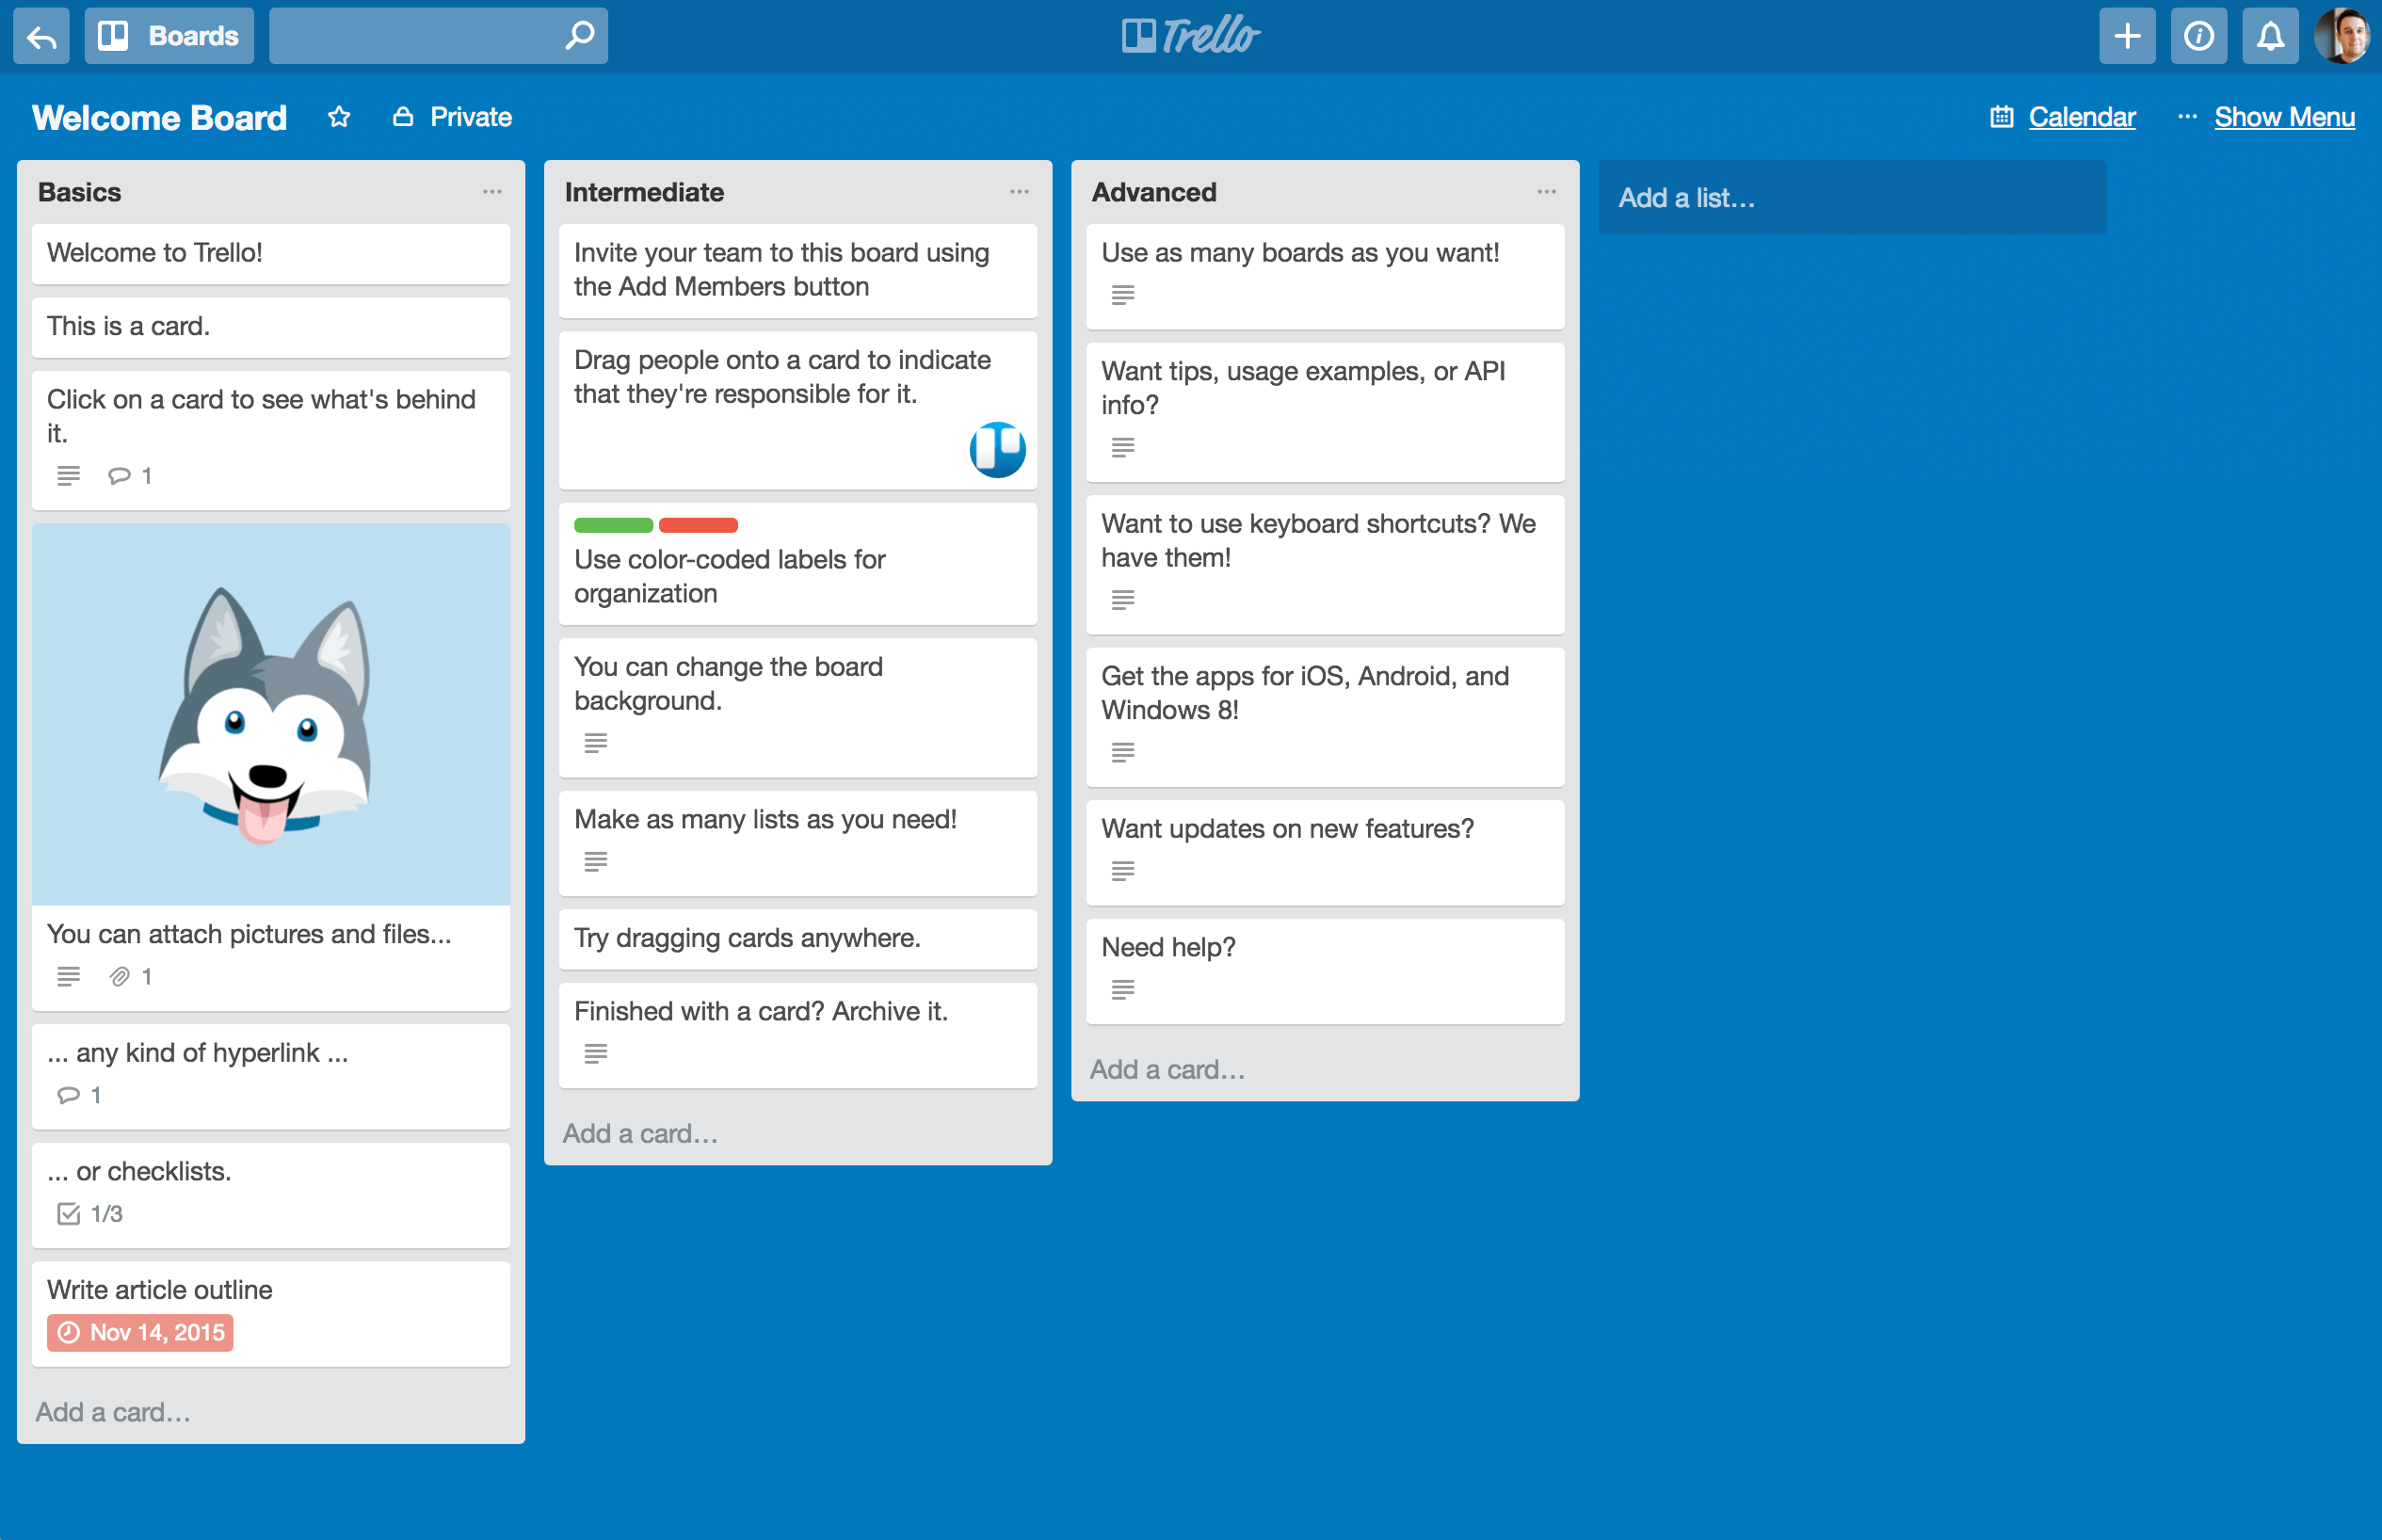 Example of depth effects in Trello's design